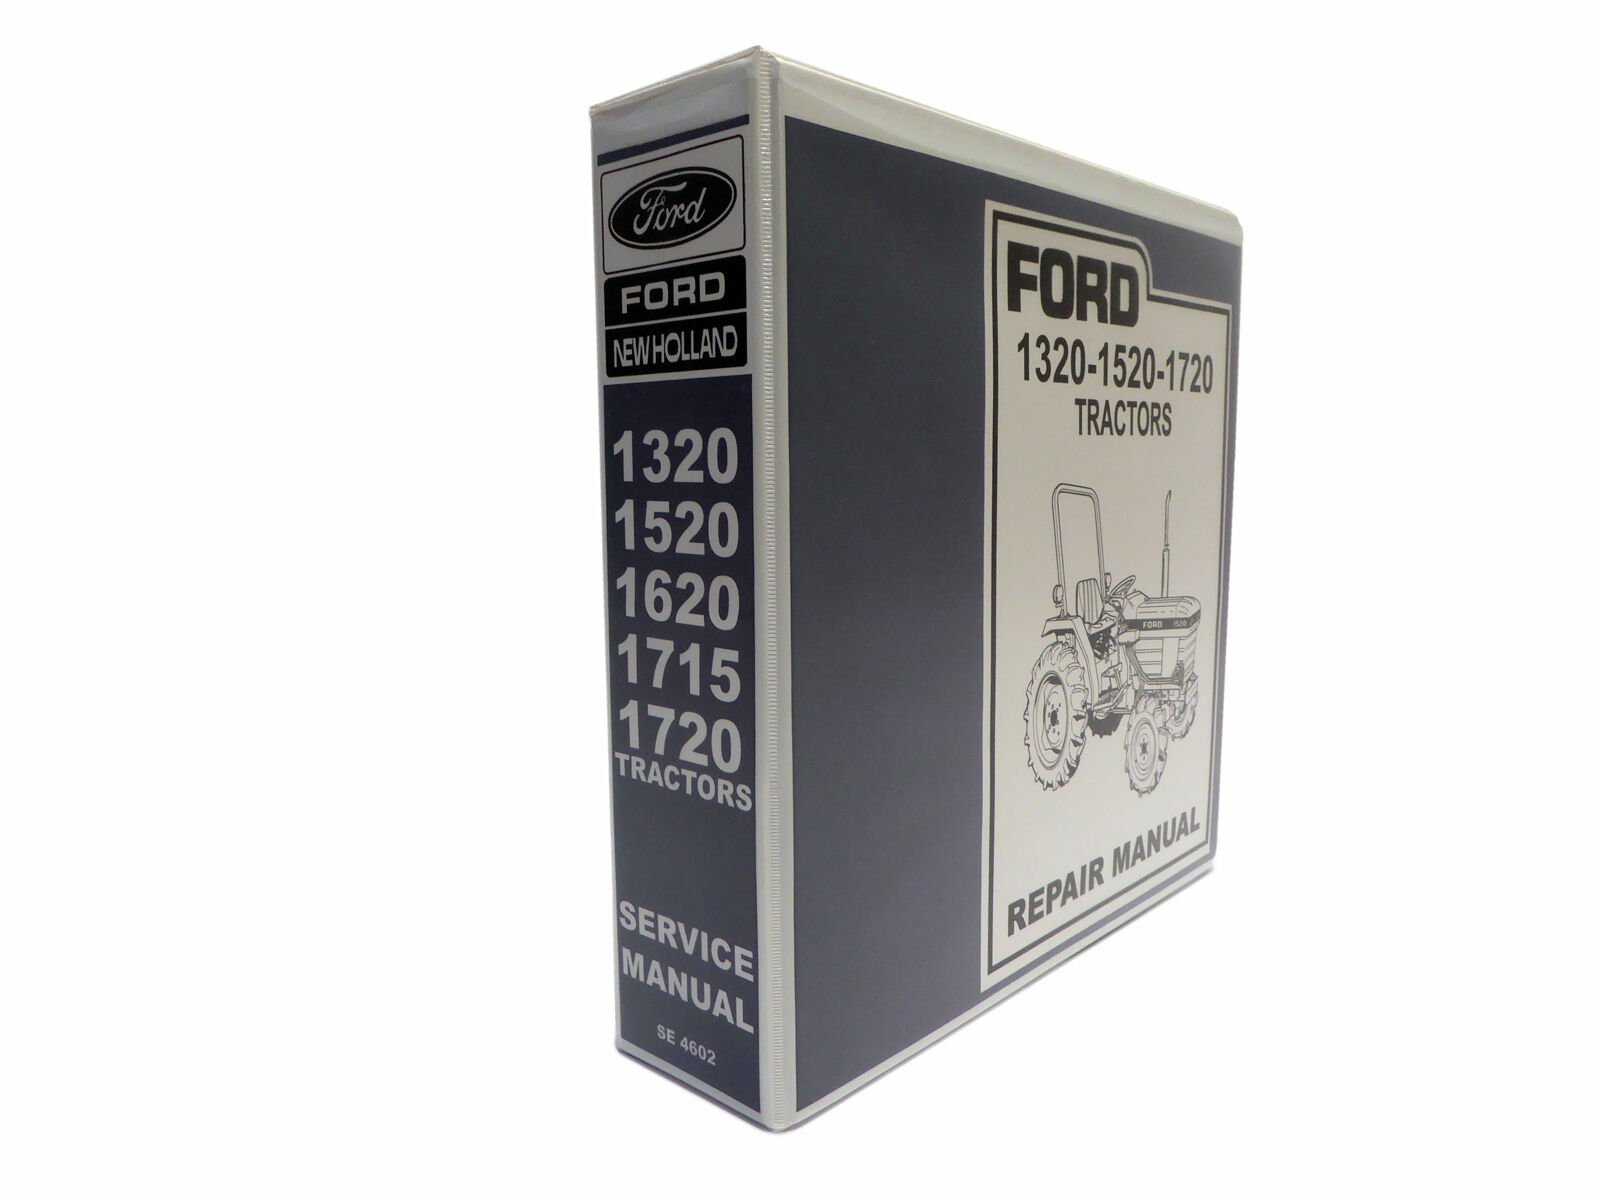 Ford 1320, 1520, 1620, 1715, 1720 Tractor Service Manual Repair Shop Book 1  of 12Only 2 available Ford 1320, 1520 ...